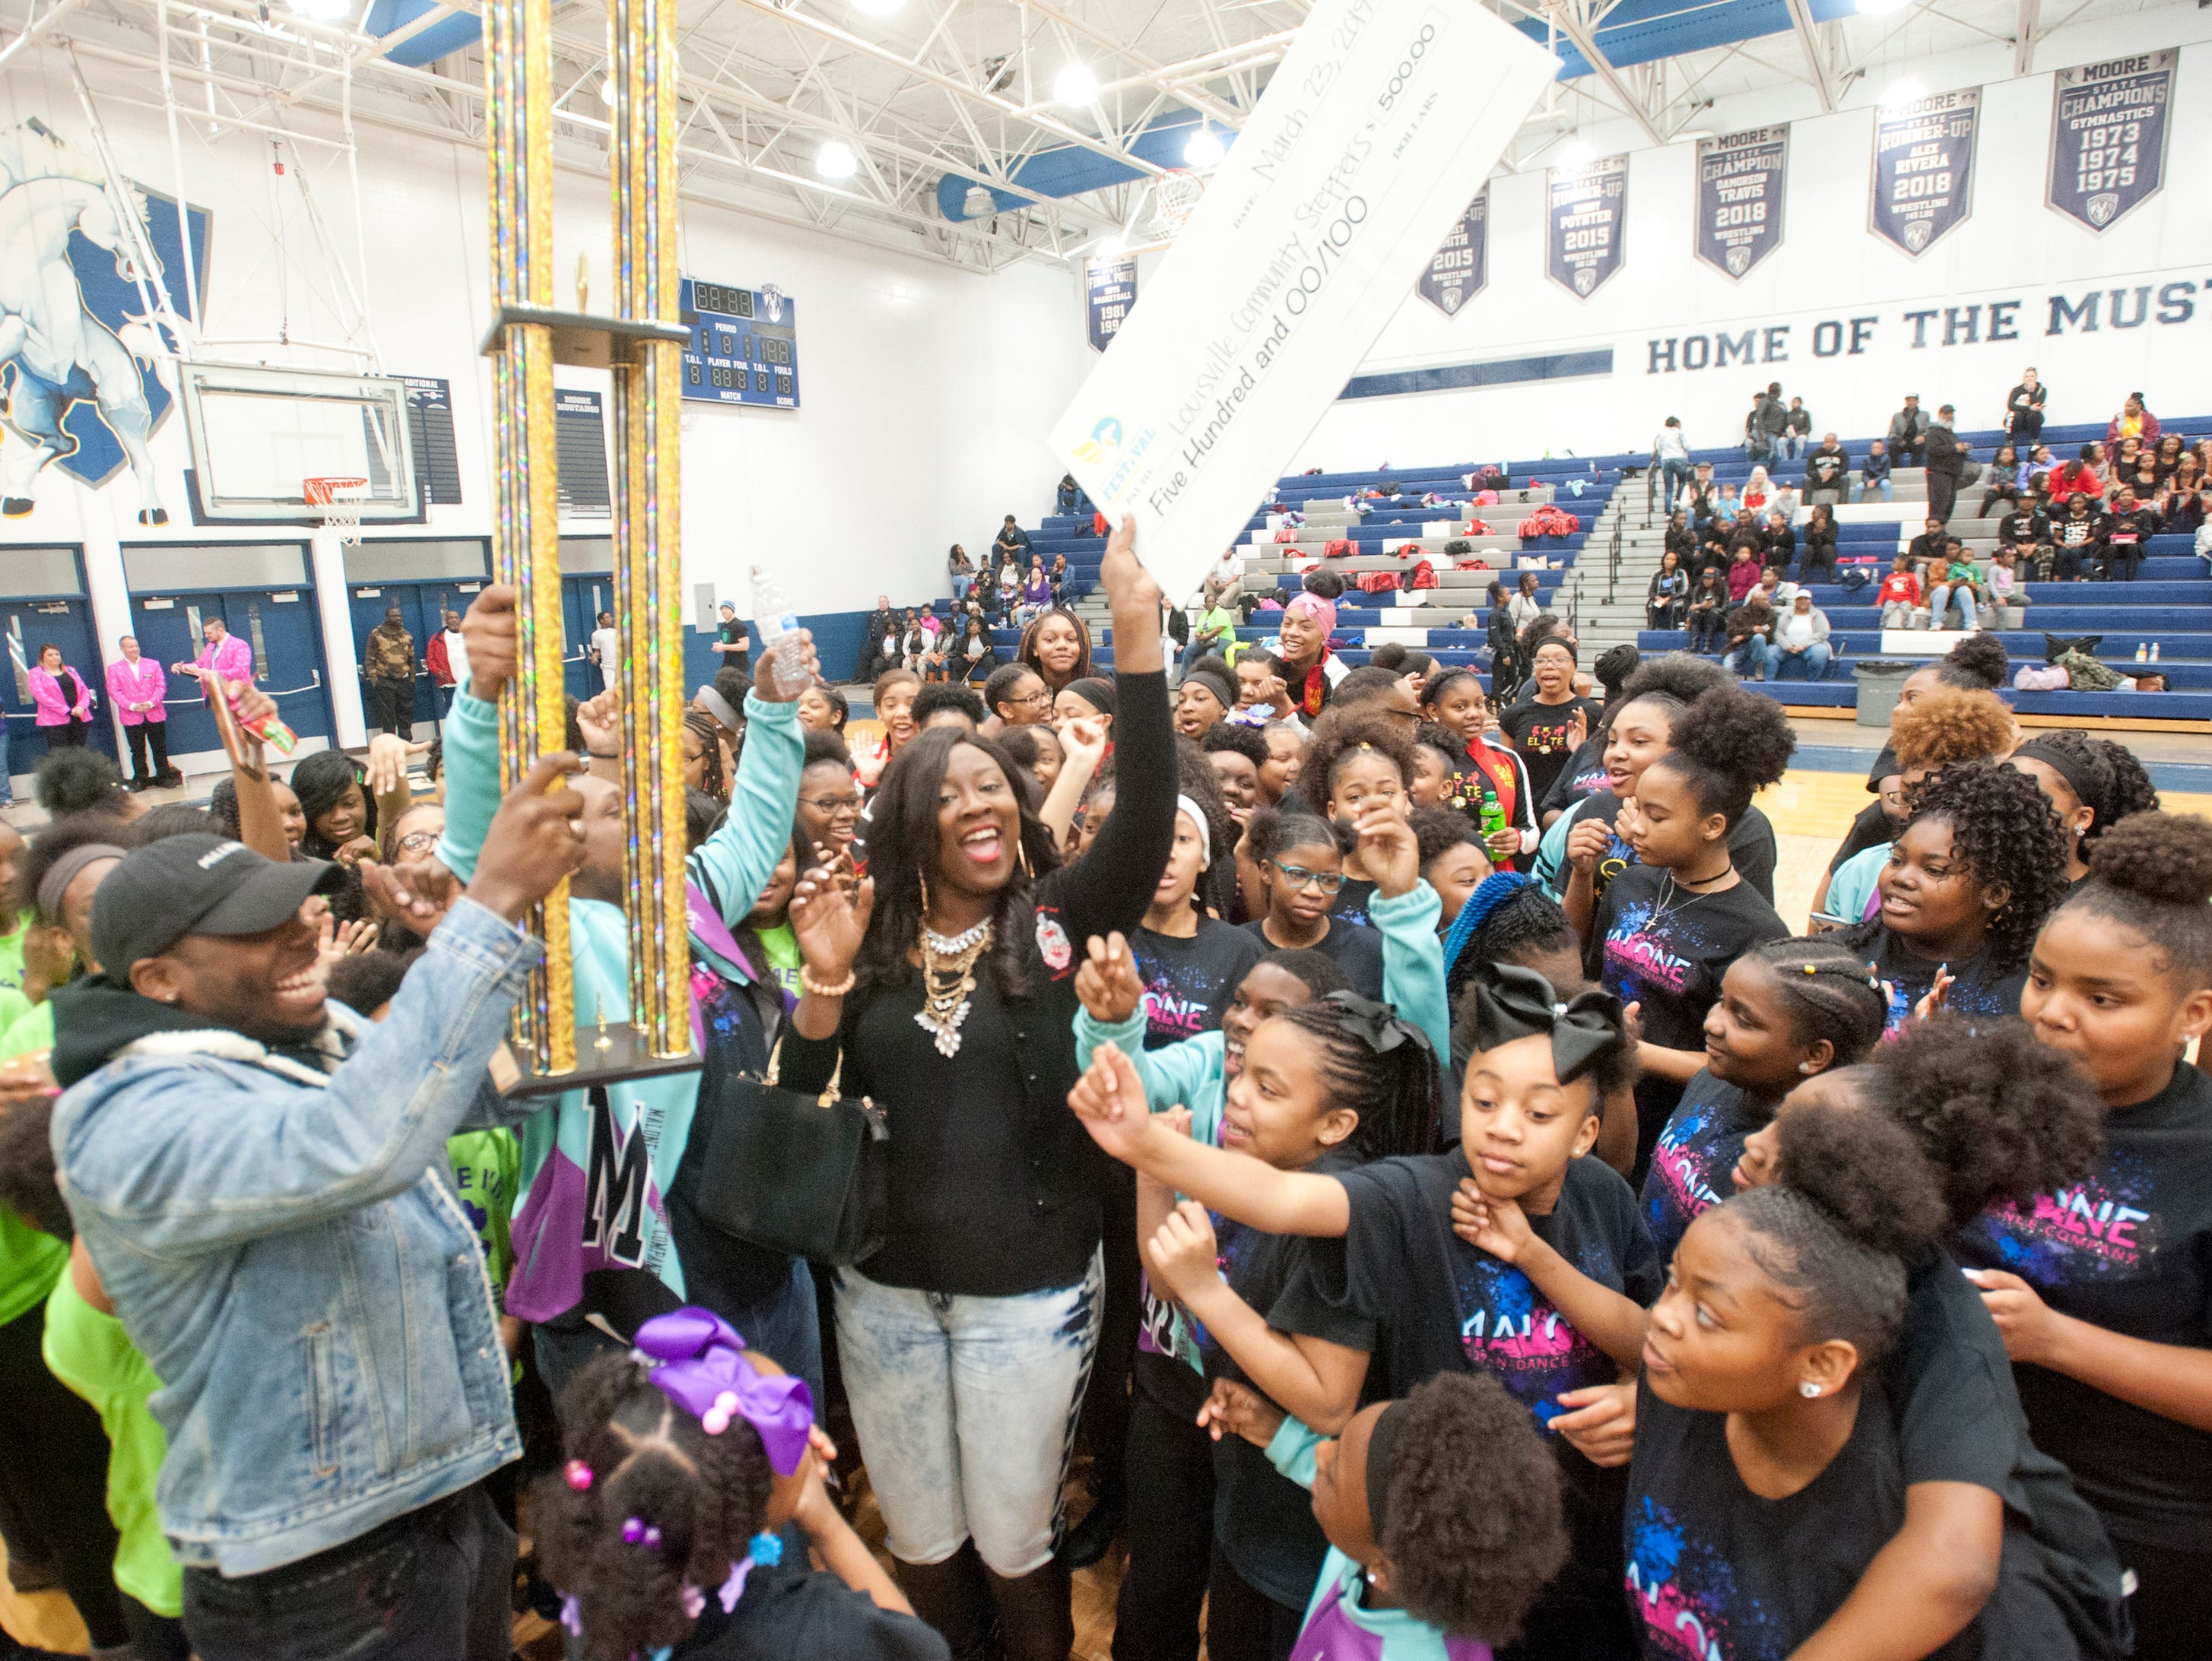 Jasmine Collins, center, coach of KY Elite, part of the combined Louisville Community Stepper, holds up a check for $500 as the group took 1st place in the StepFest community category during the Kentucky Derby Festival event sponsored by Louisville Parks and Recreation and held at Moore Traditional High School. 23 March 2019